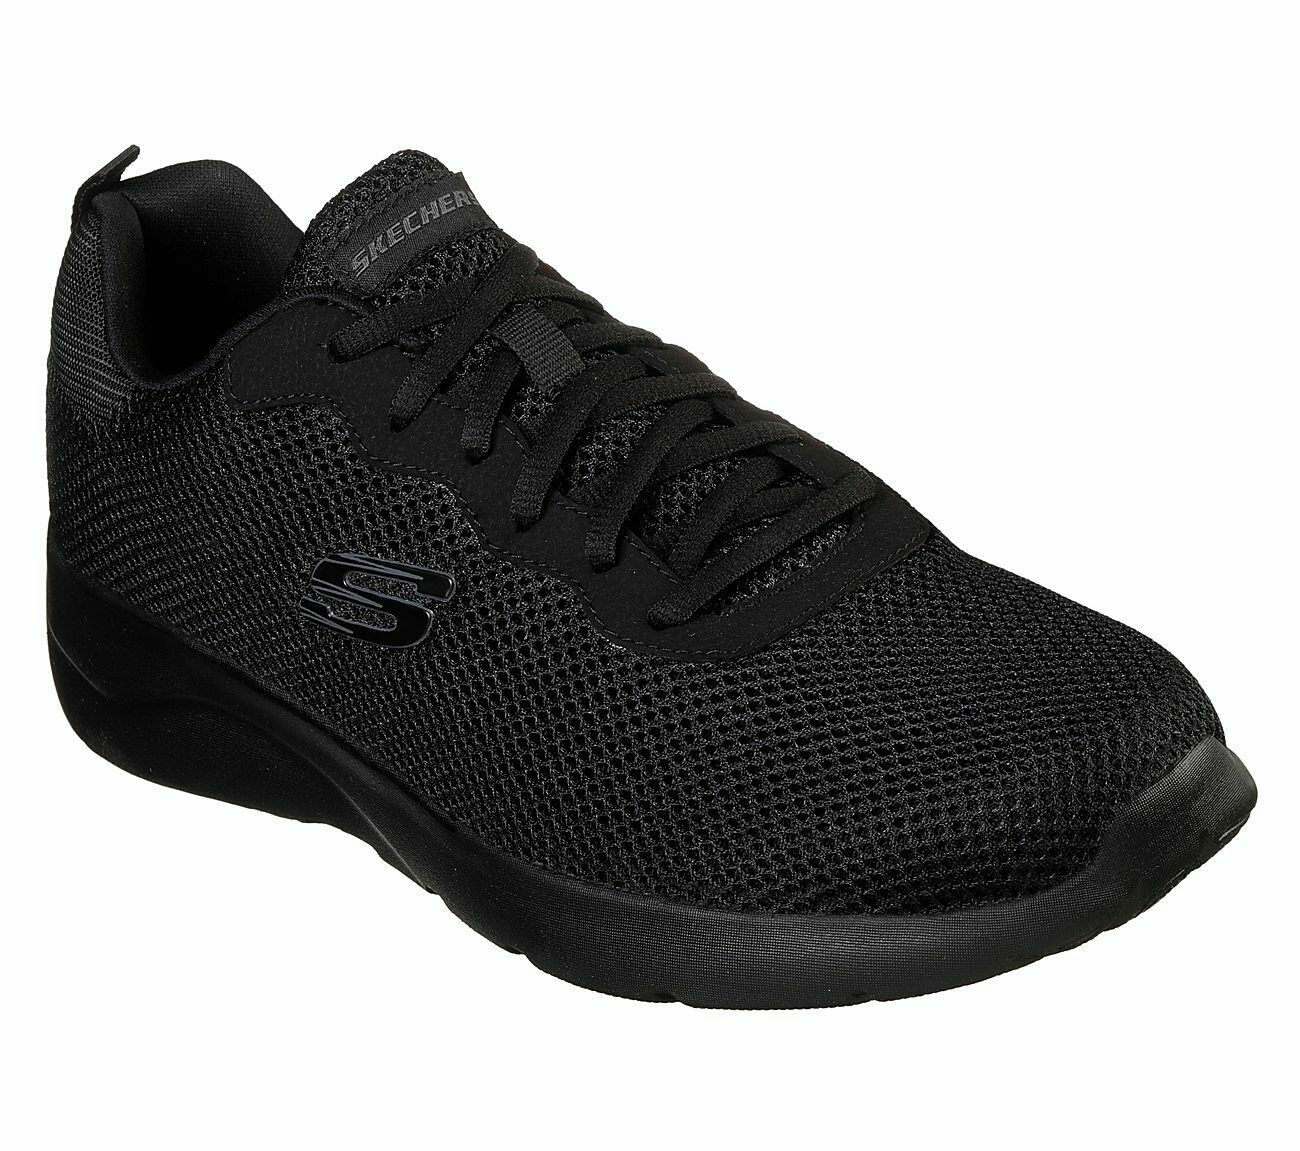 Skechers Wide Fit Black shoes Men Memory Foam Train Sporty Comfort Casual 58362